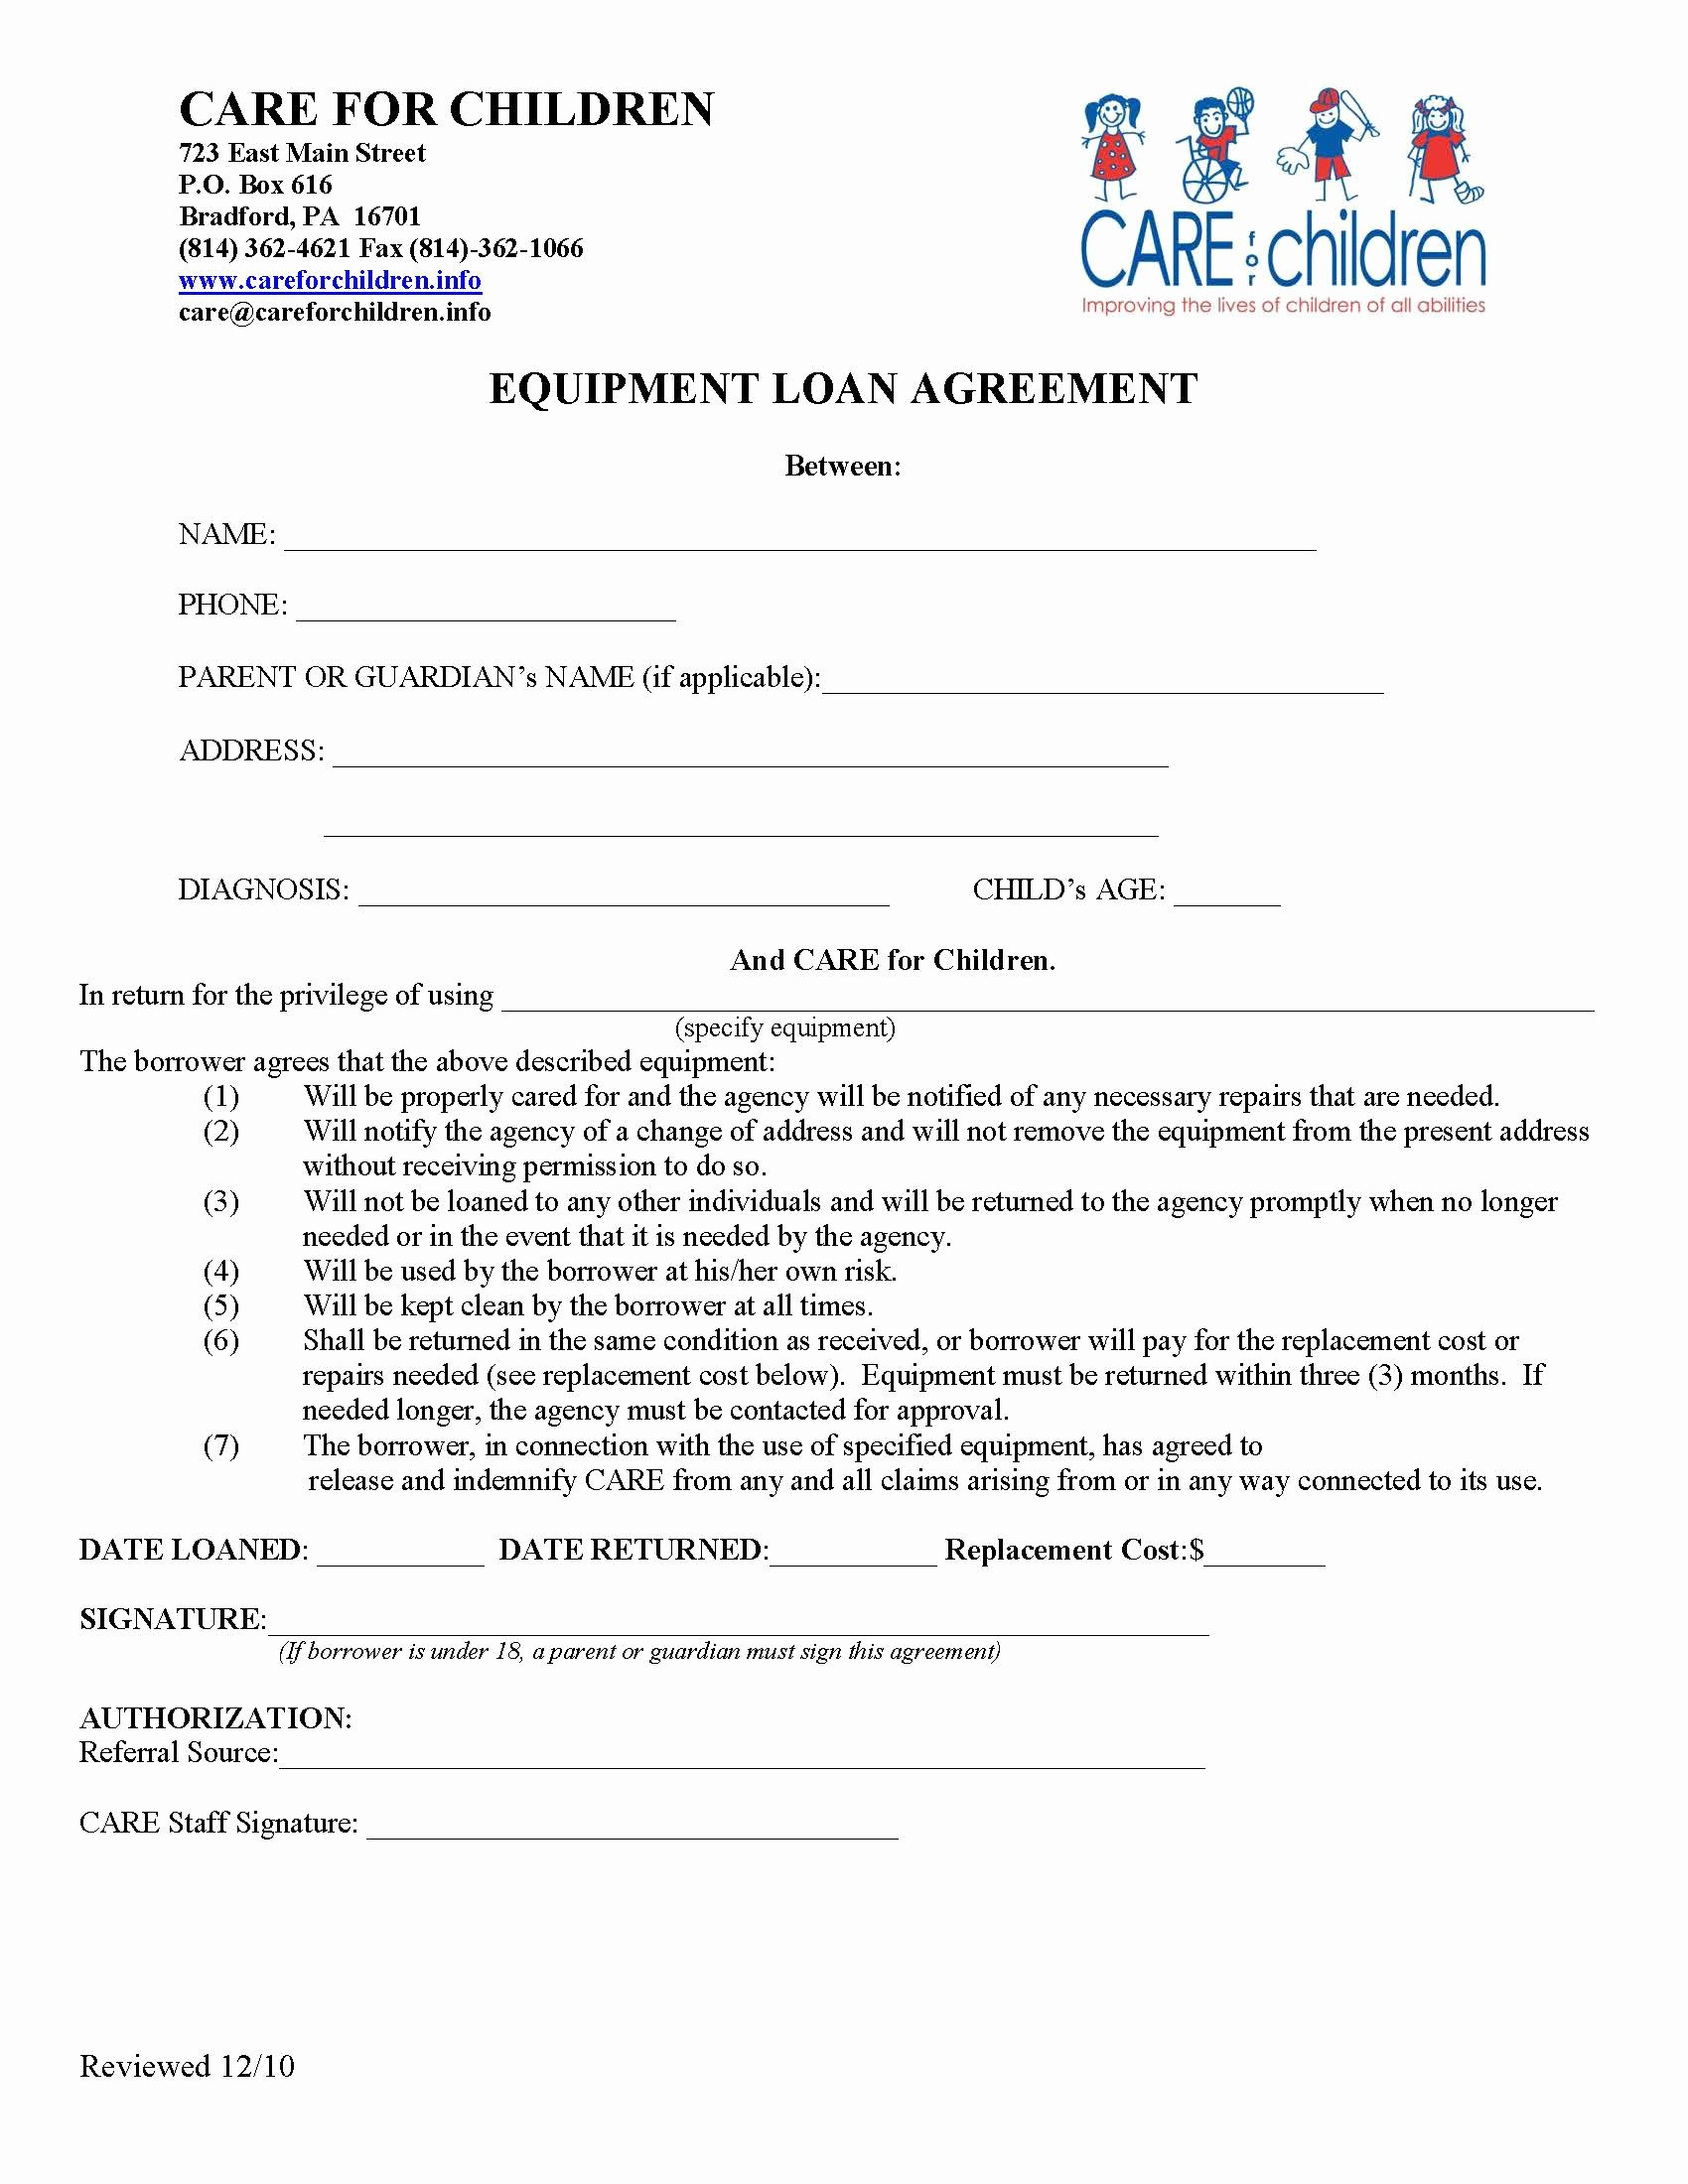 Equipment Loan Agreement Template Unique Verner W Smith Adaptive Equipment Clinic Care for Children